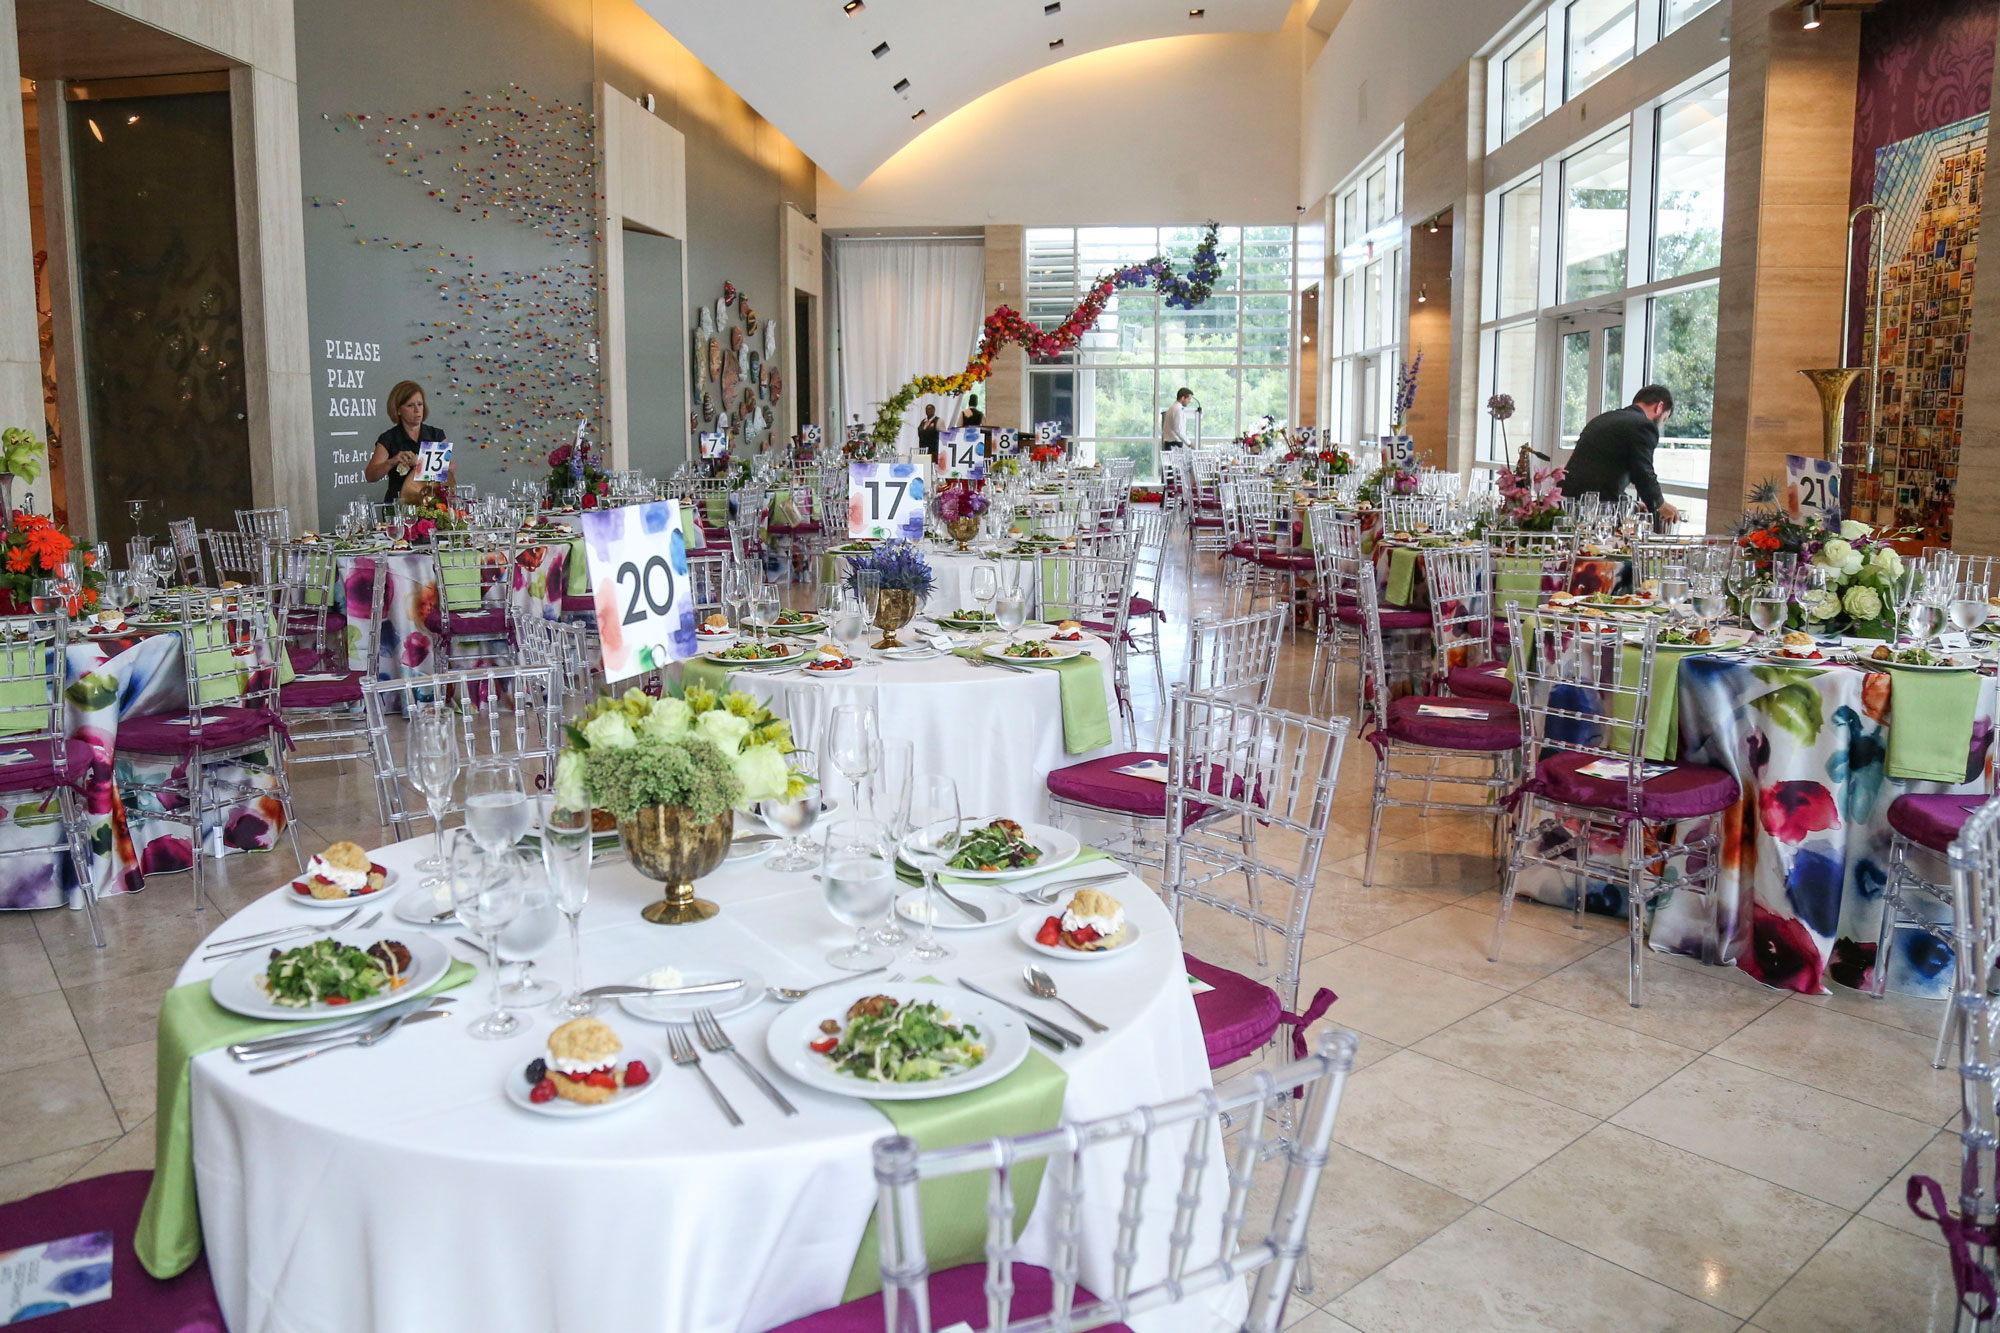 A formal dinner in the Grand Gallery